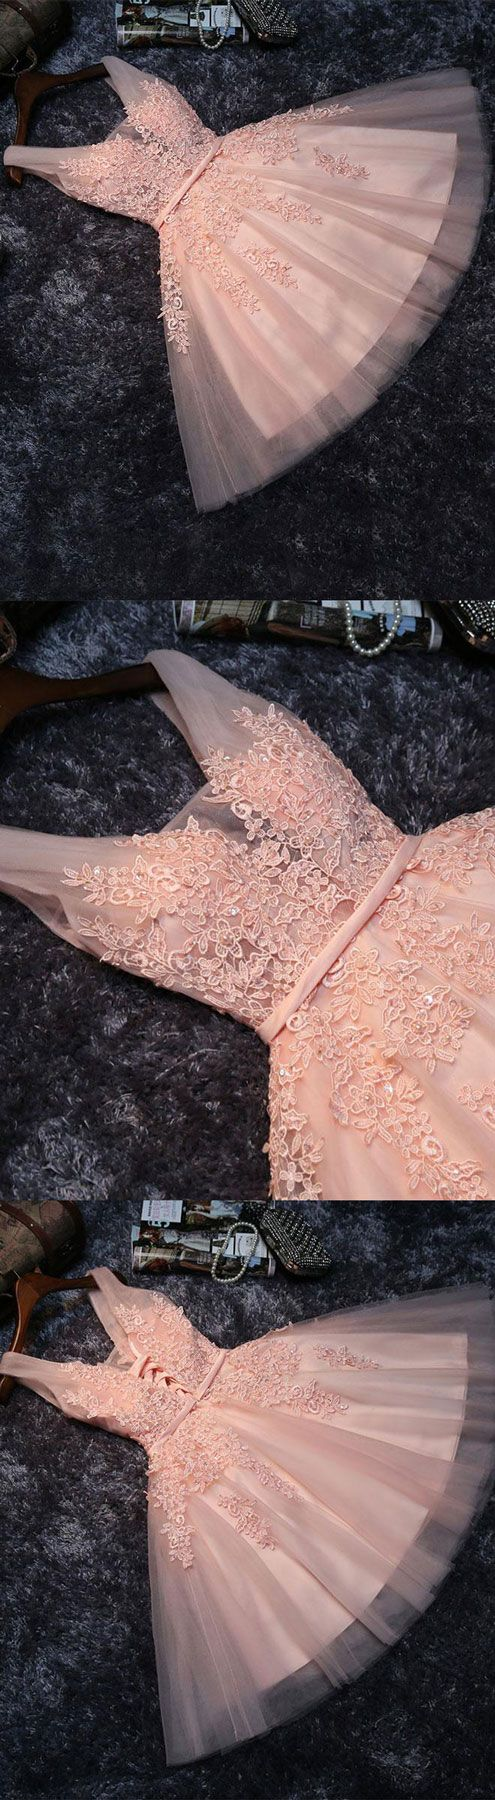 171 best Vestidos images on Pinterest | Ball gown, Graduation ...